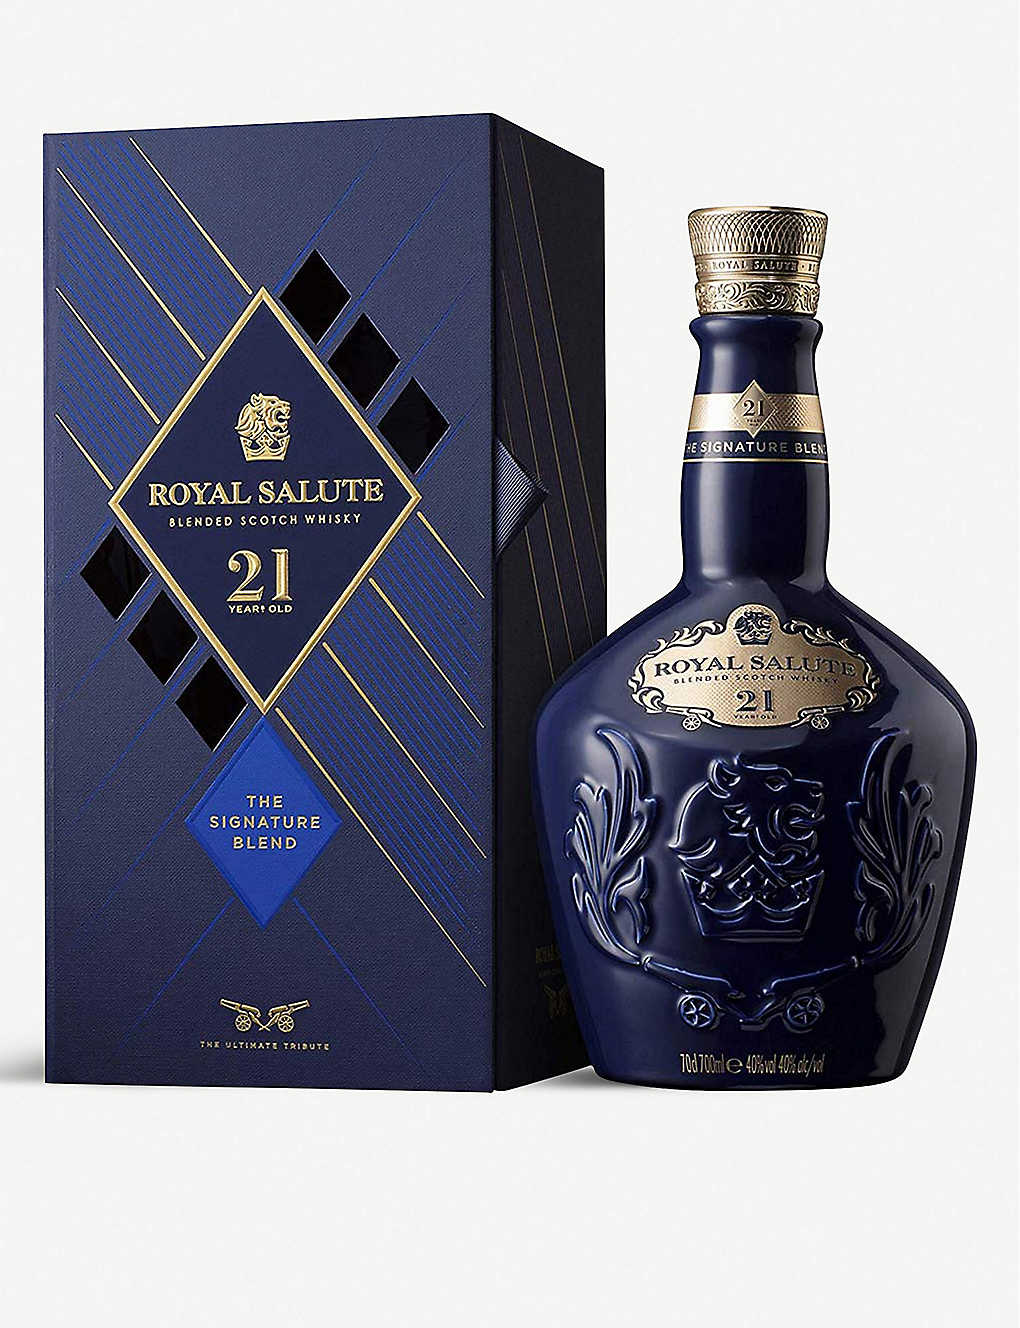 CHIVAS REGAL: Royal Salute 21-year-old blended Scotch whisky 700ml